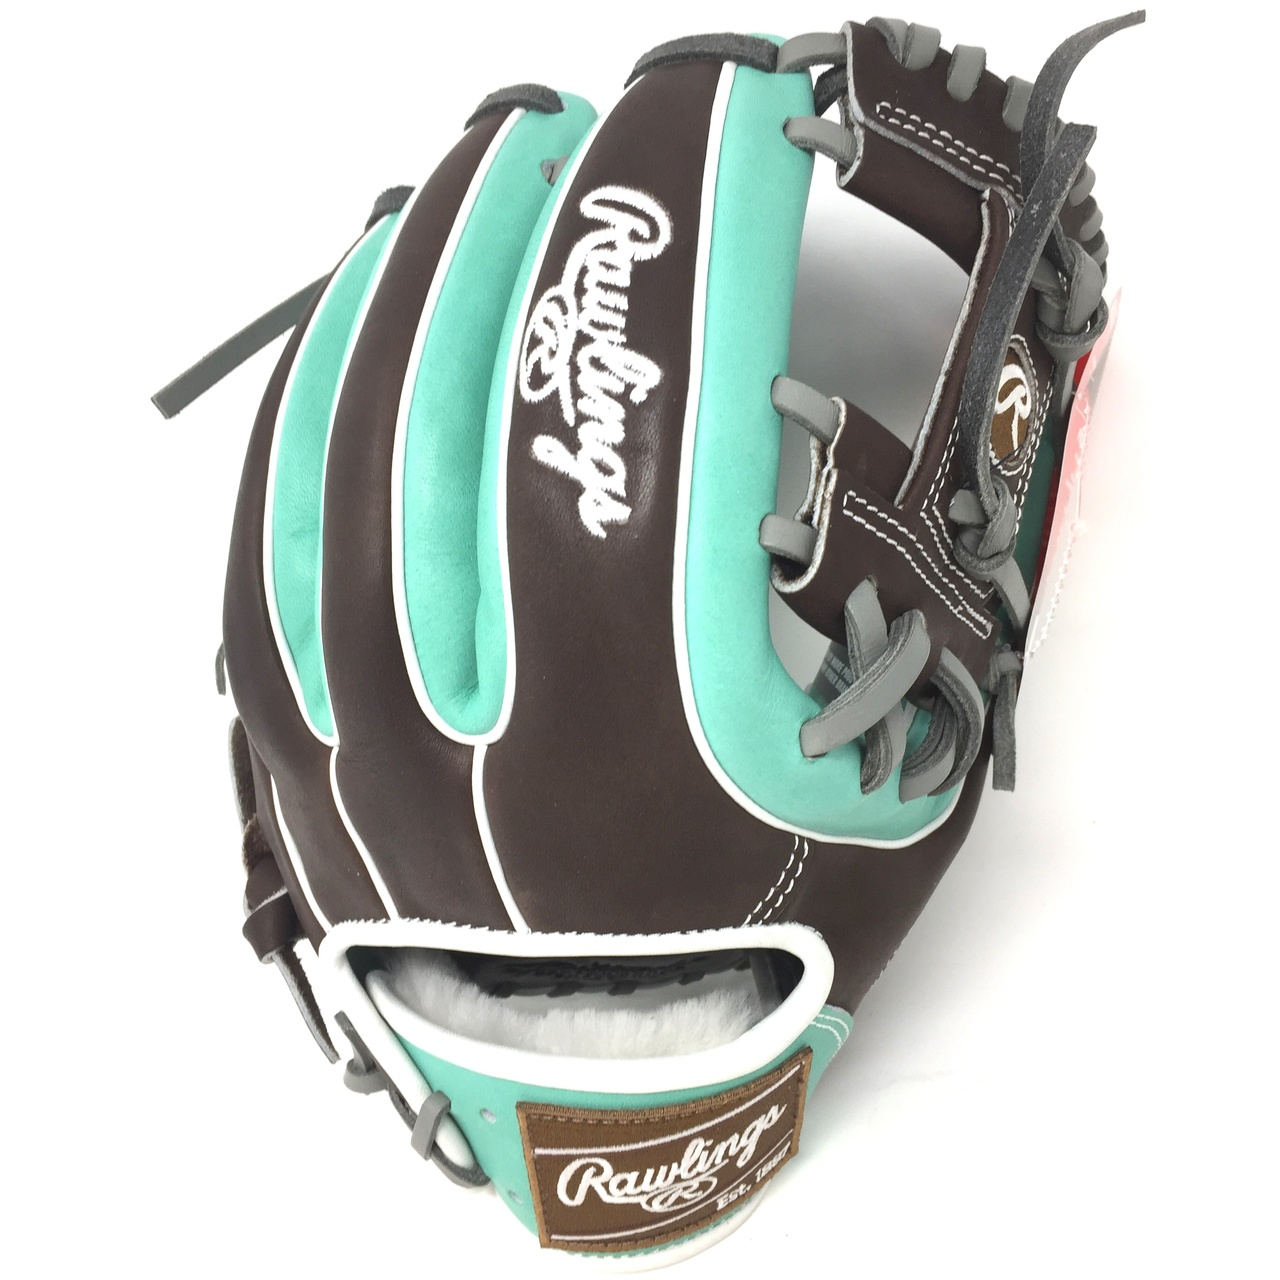 rawlings-pro-preferred-314-mint-baseball-glove-11-5-right-hand-throw PROS314-20MC-RightHandThrow Rawlings 083321603679 Crafted from flawless luxurious full-grain kip leather for exceptional performance this